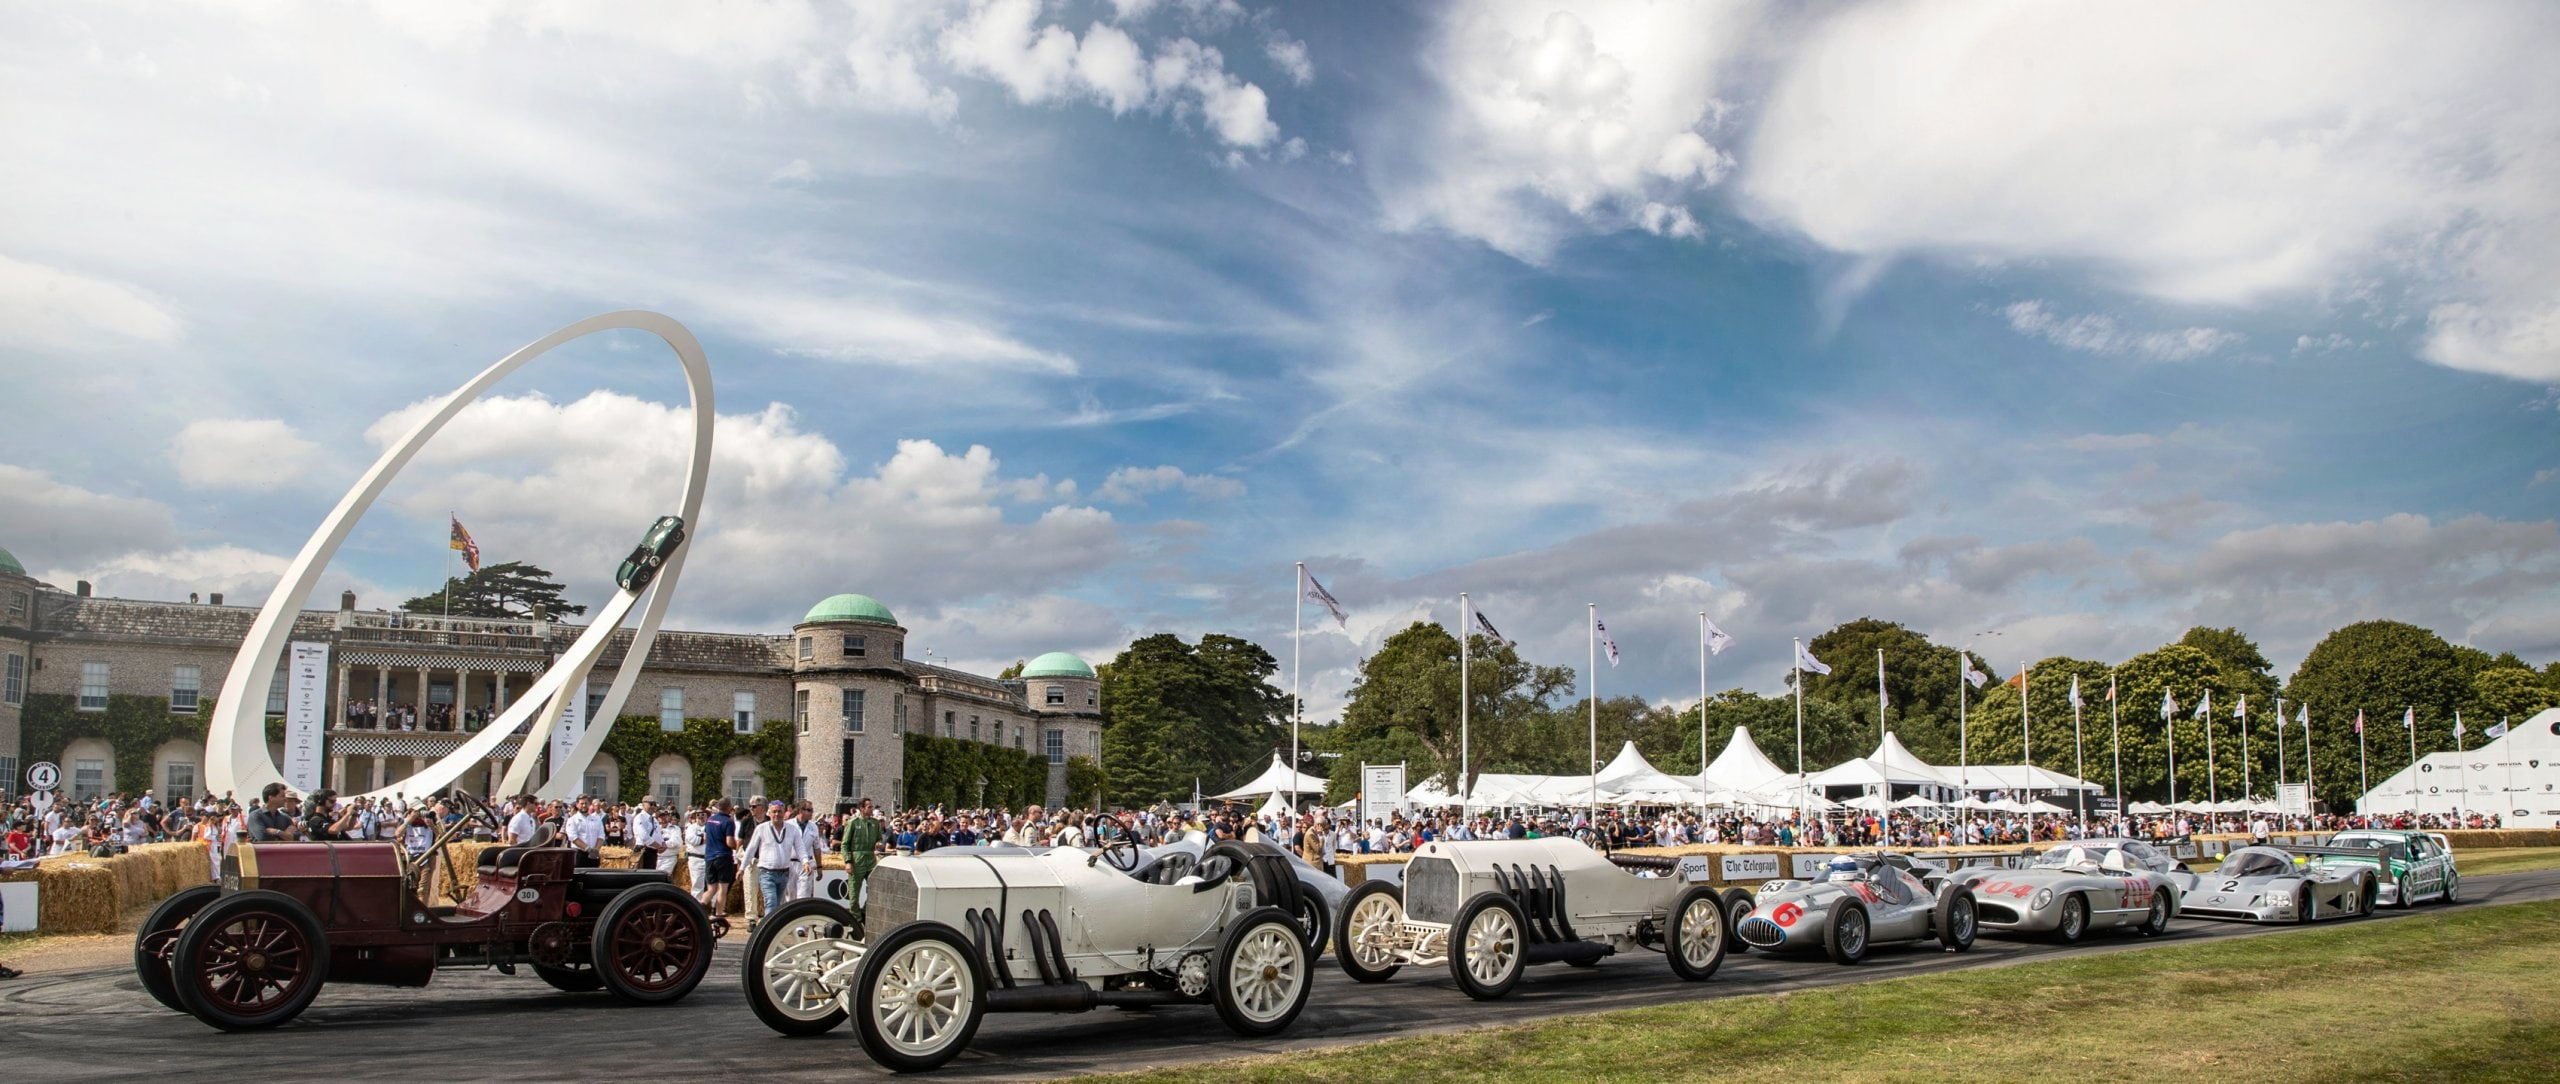 Mercedes-Benz Classic vehicles at the Goodwood Festival of Speed.